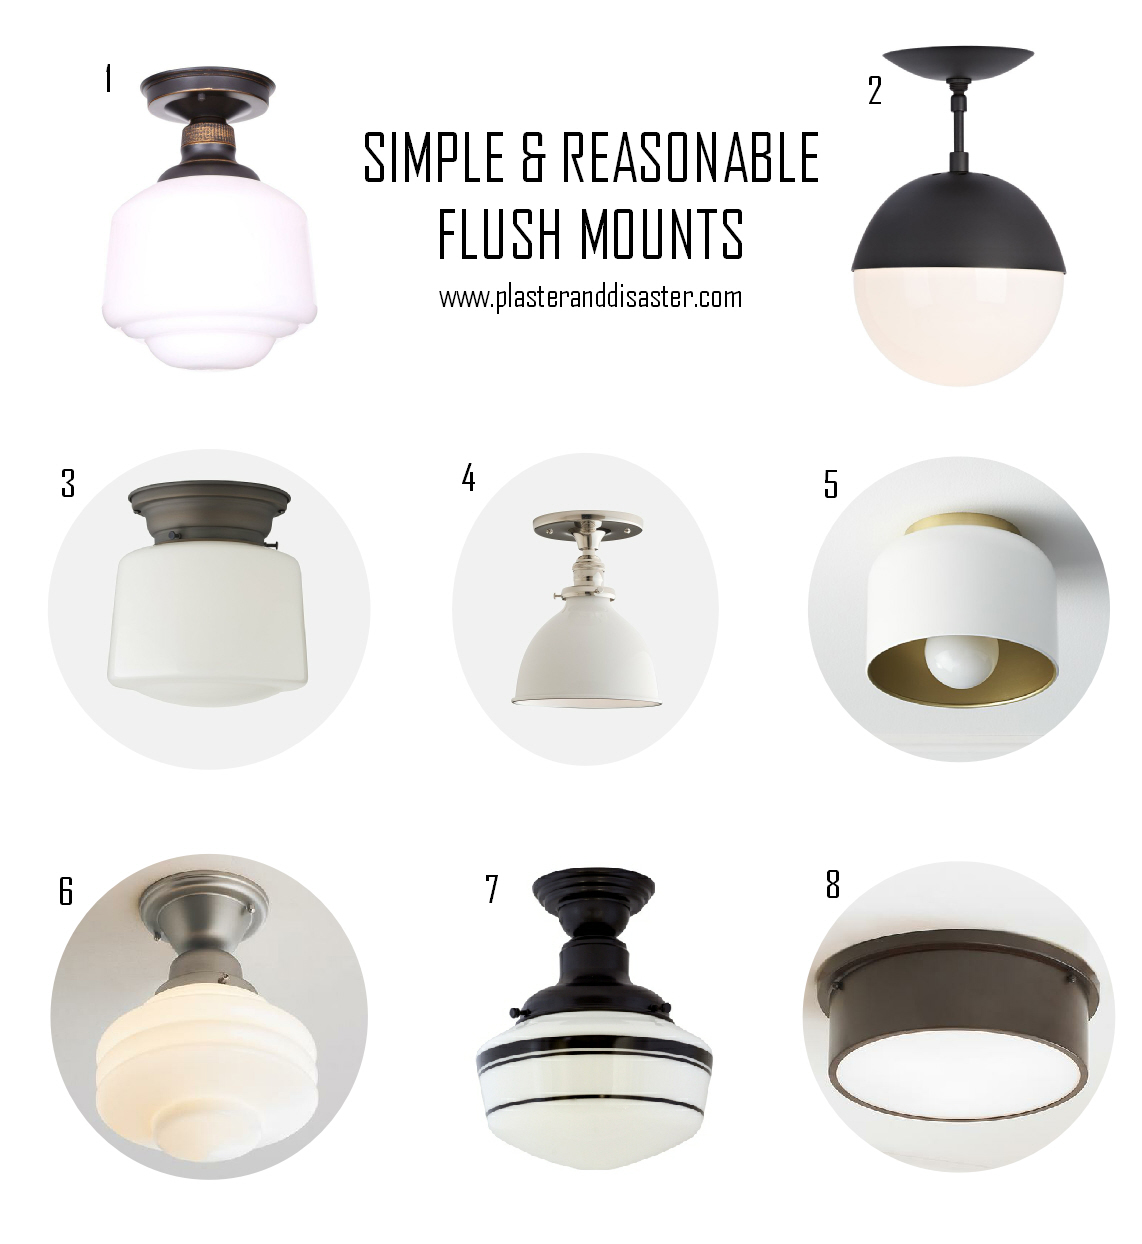 Simple & Reasonable Flush Mounts - Flush Mount Roundup - Plaster & Disaster